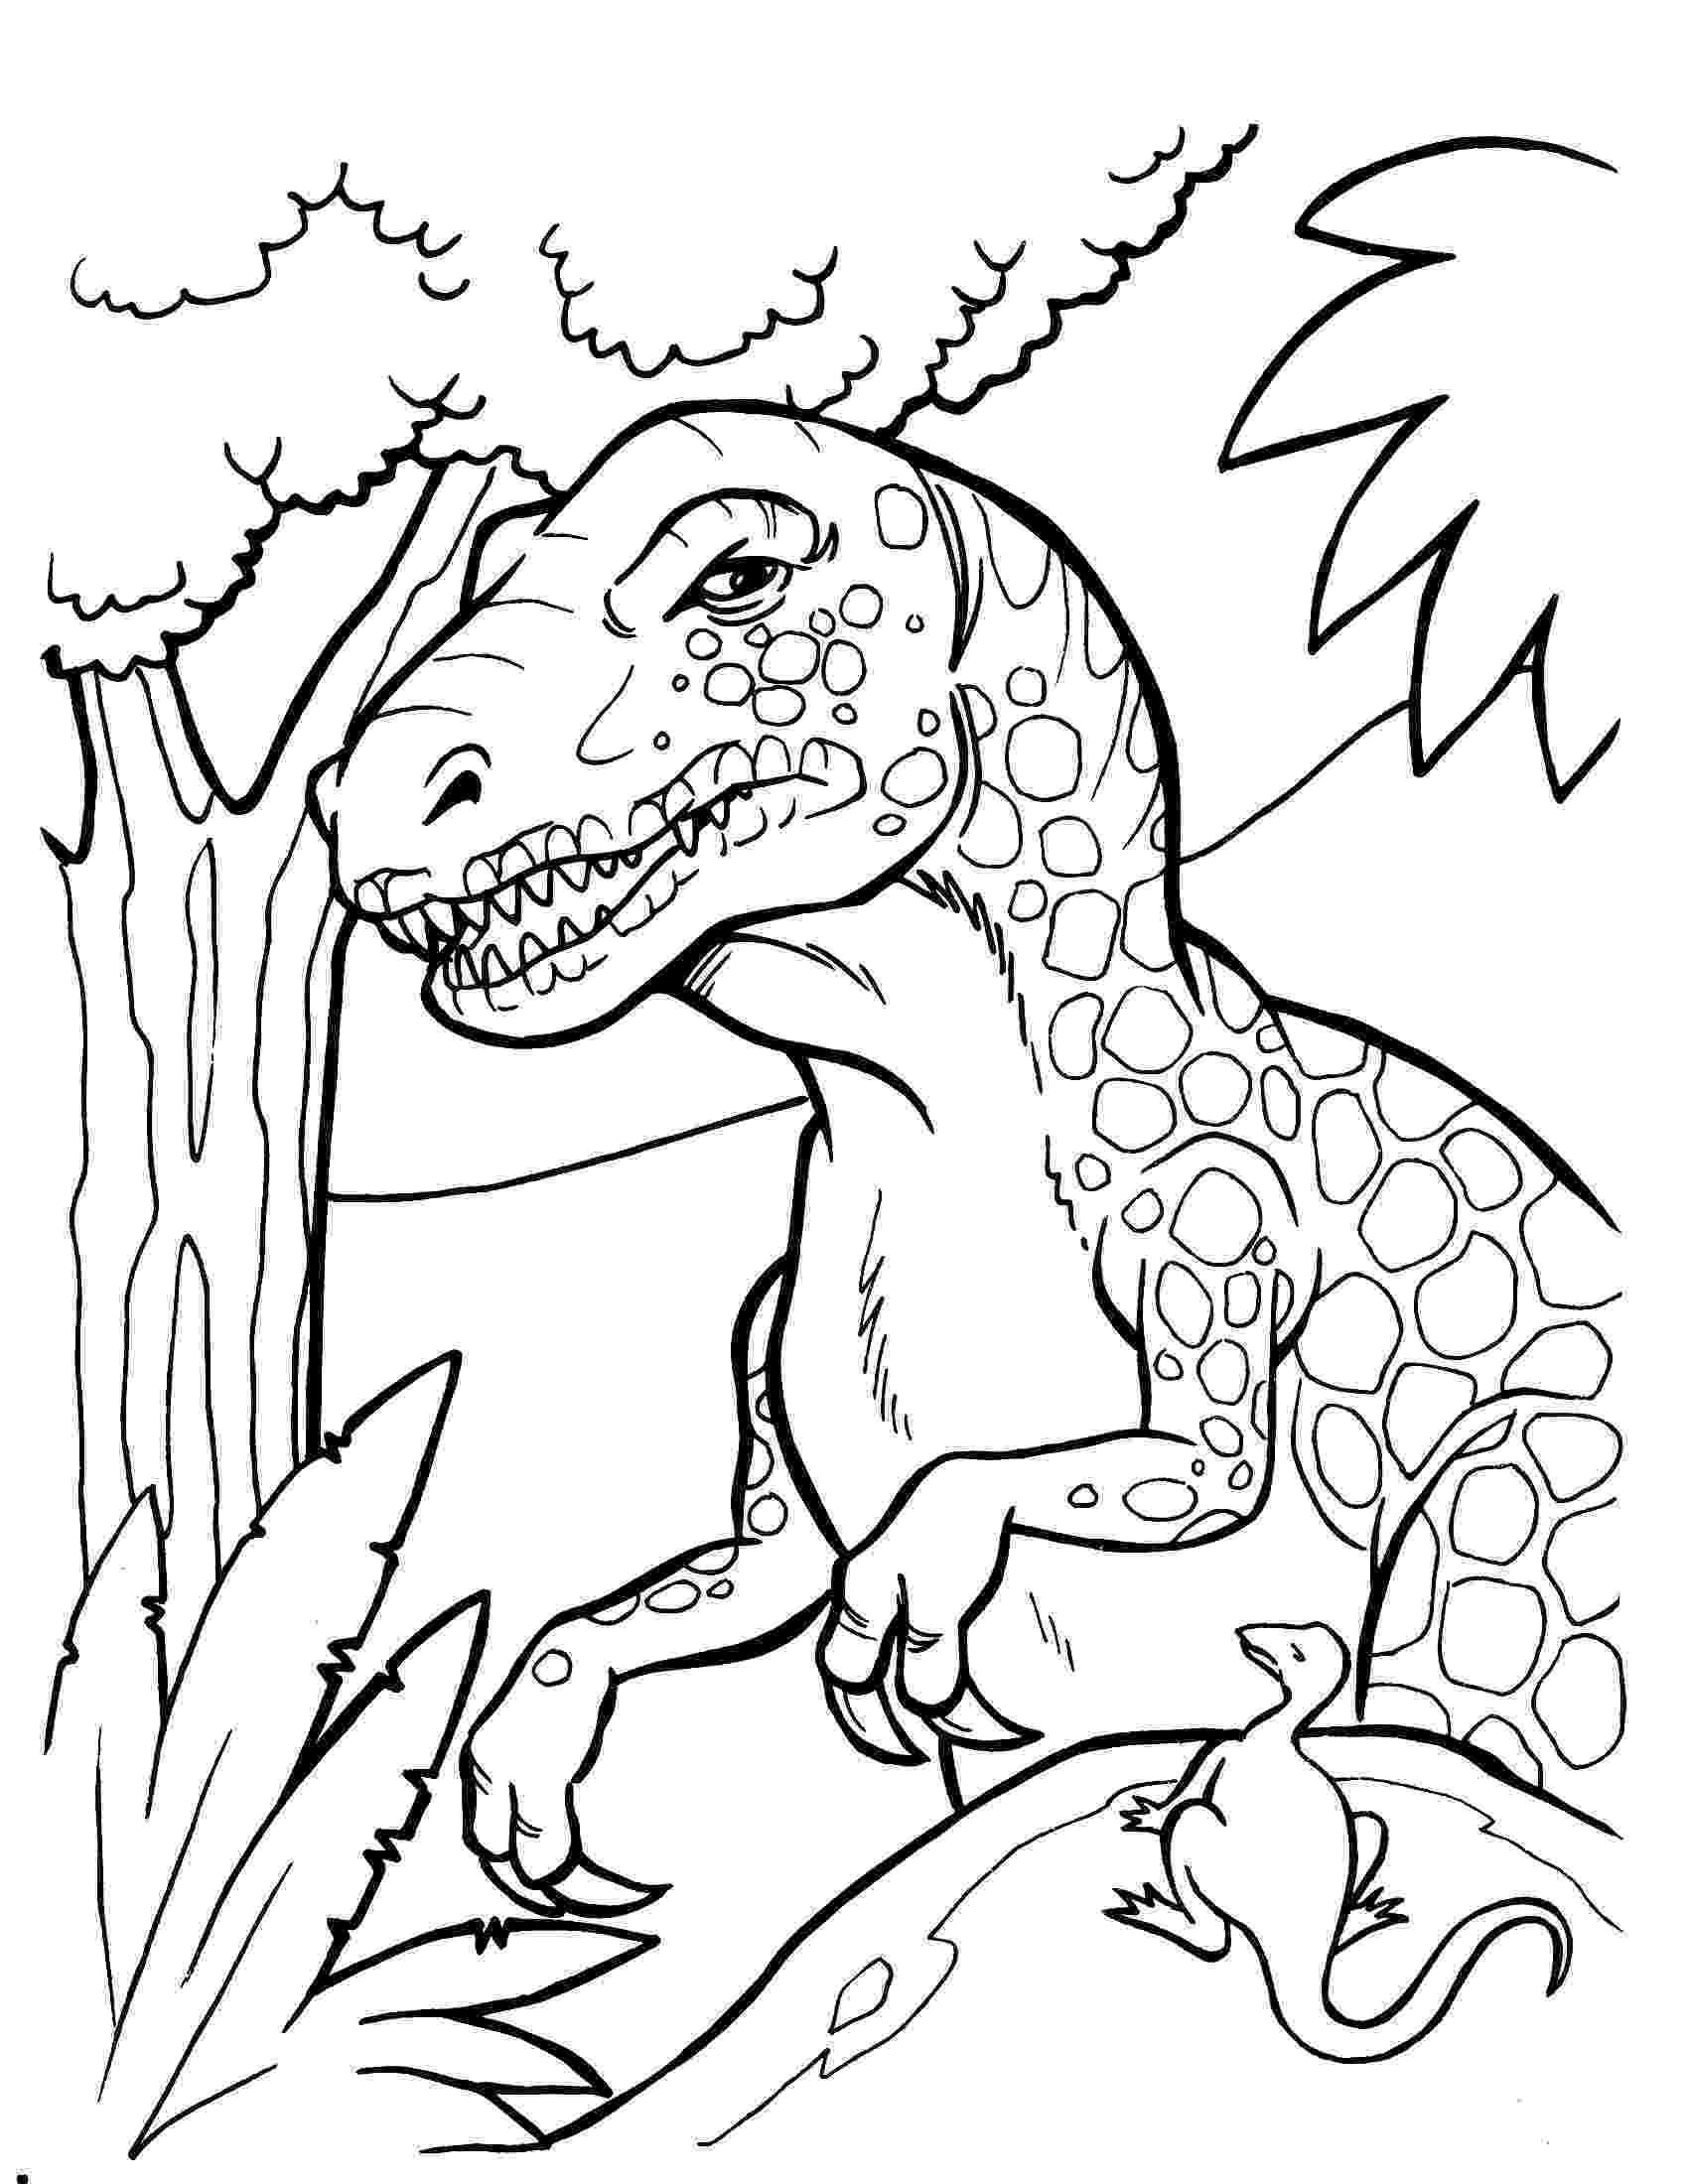 pictures of dinosaurs to print coloring pages dinosaur free printable coloring pages dinosaurs print pictures to of